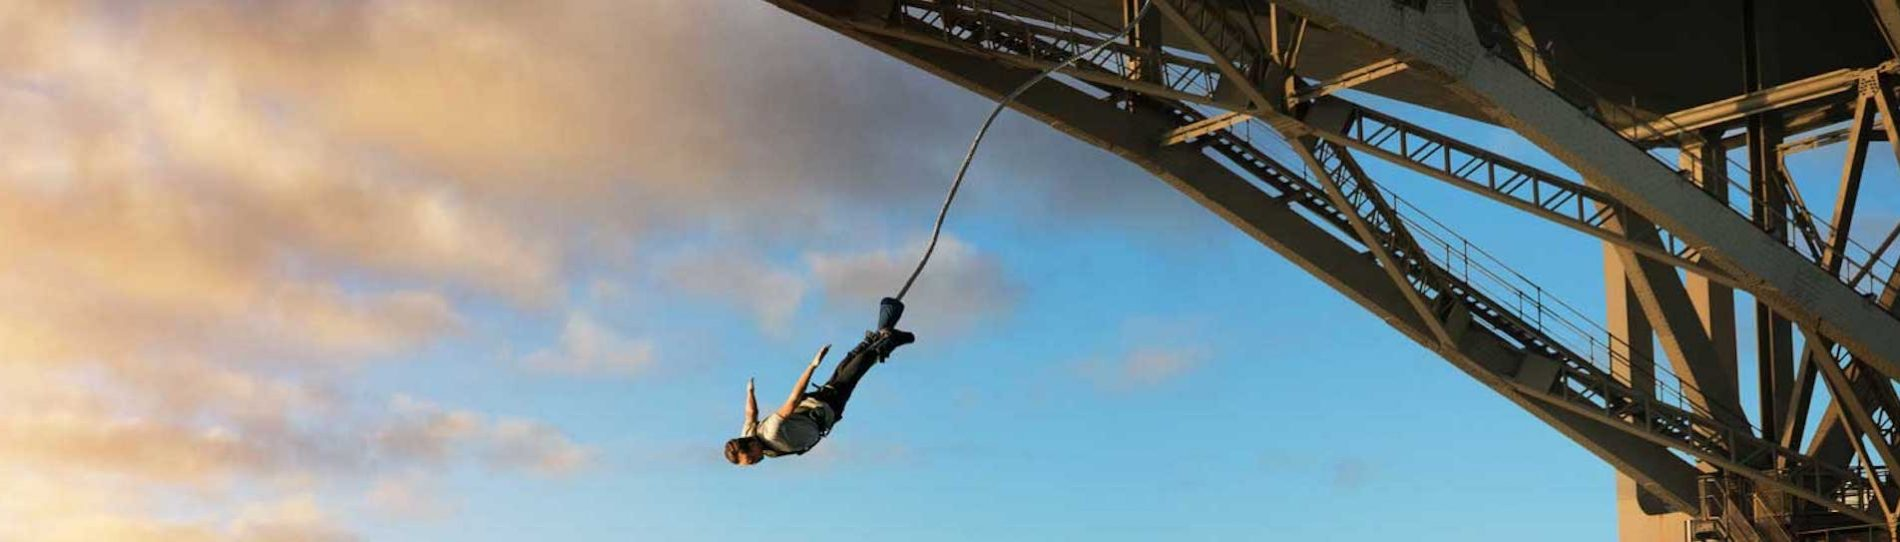 buck bungy jumping off bridge